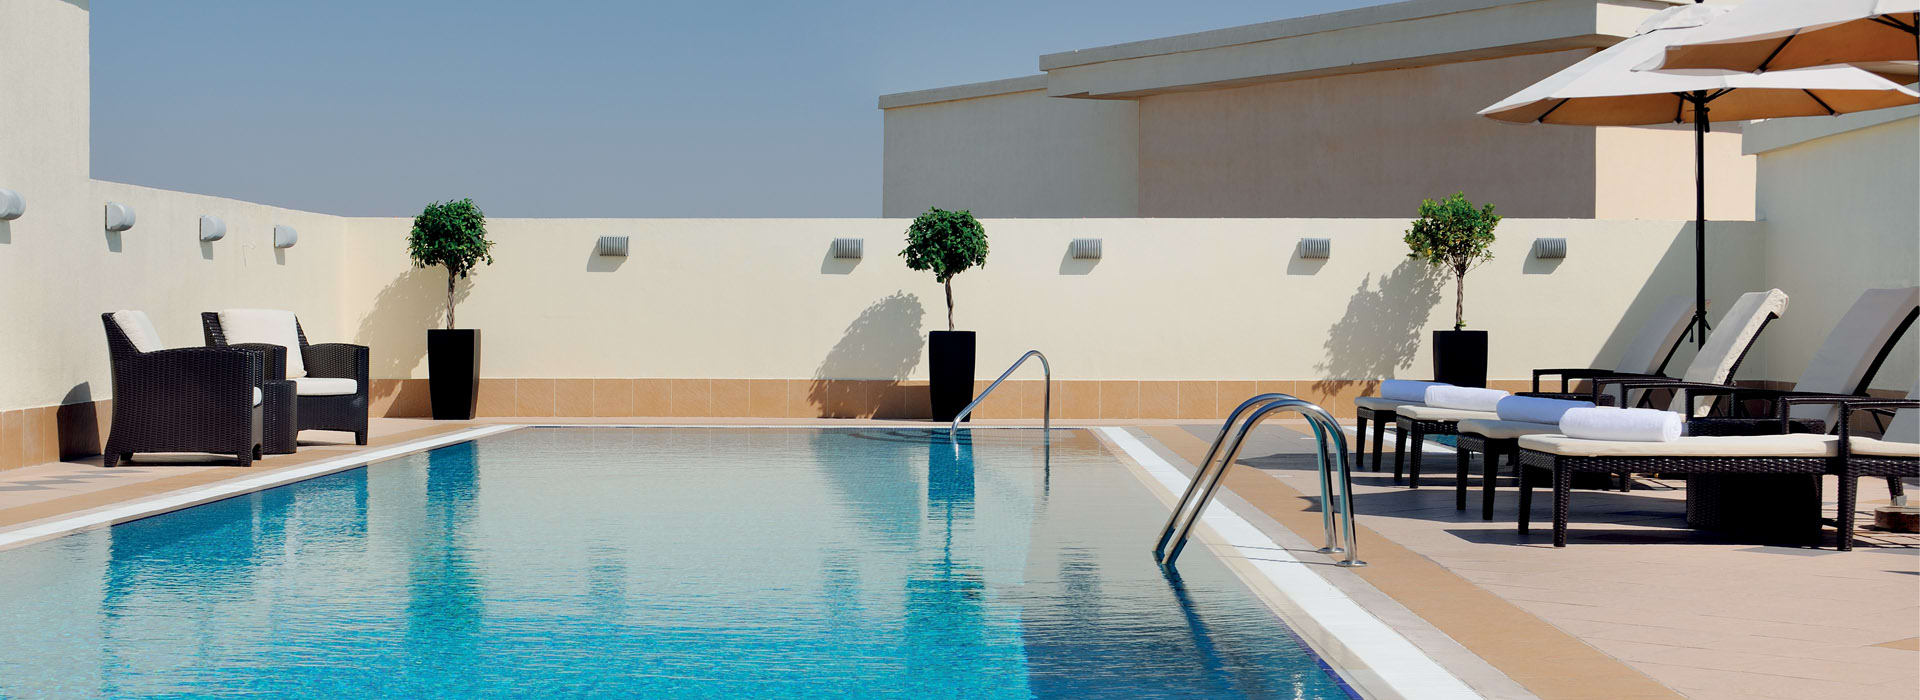 Hotel deals Dubai and rooftop pool hotels